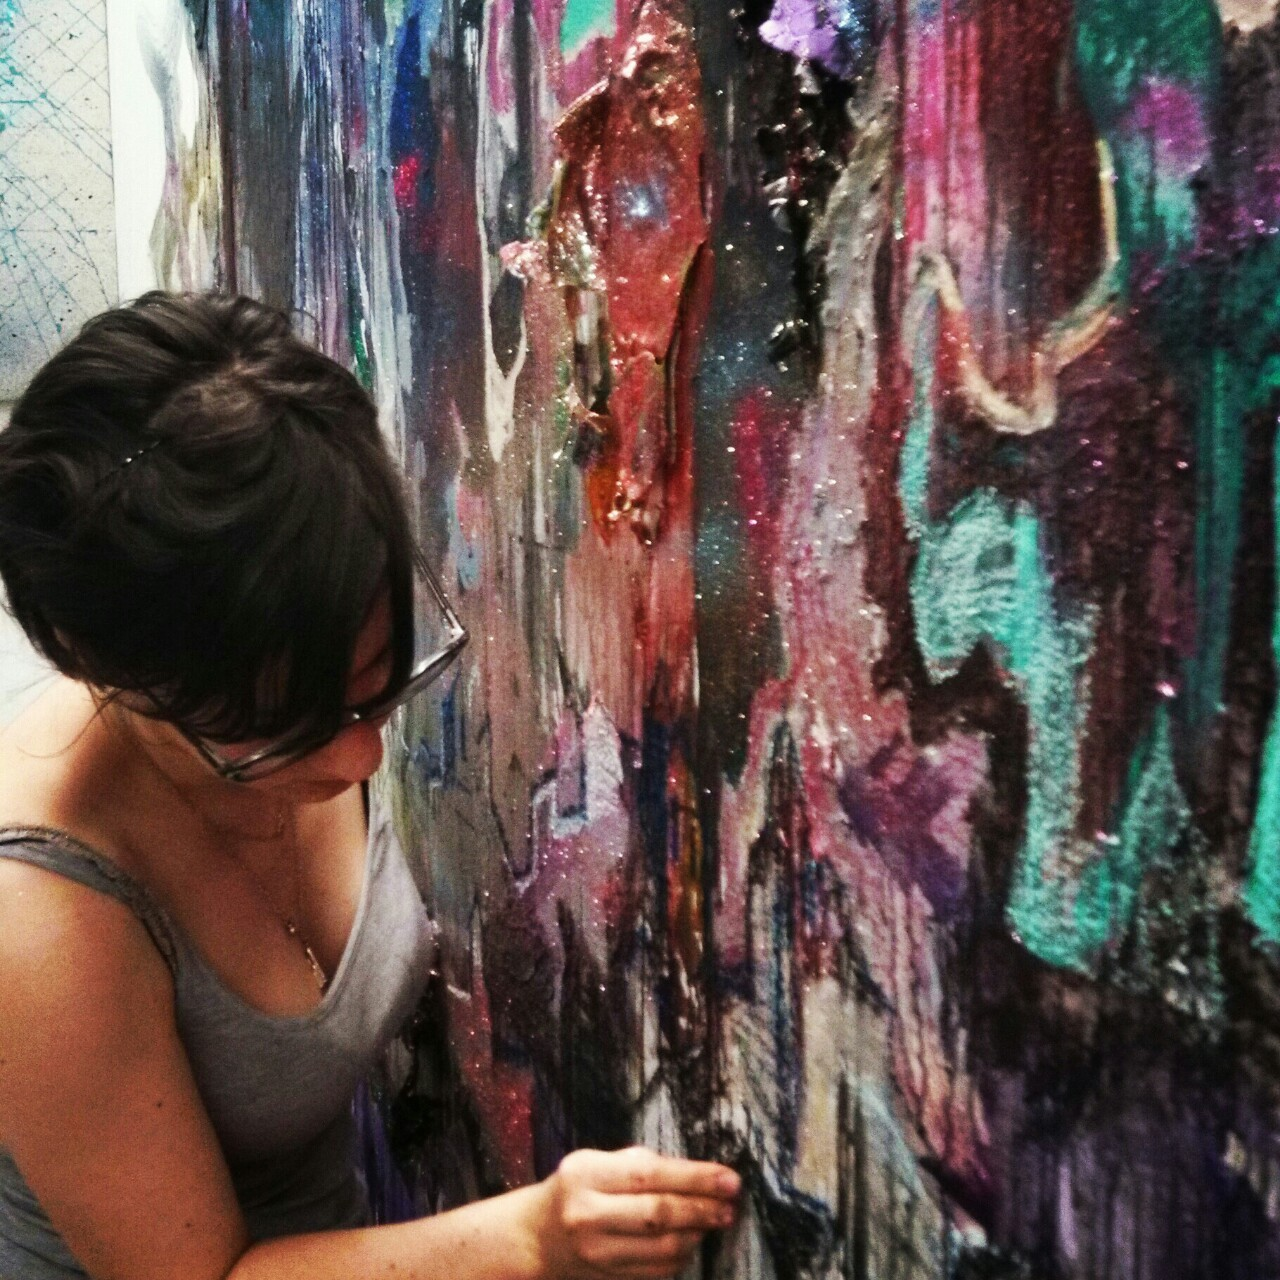 That's me working on a collaboration wall painting with all of my studio mates + my boyfriend.